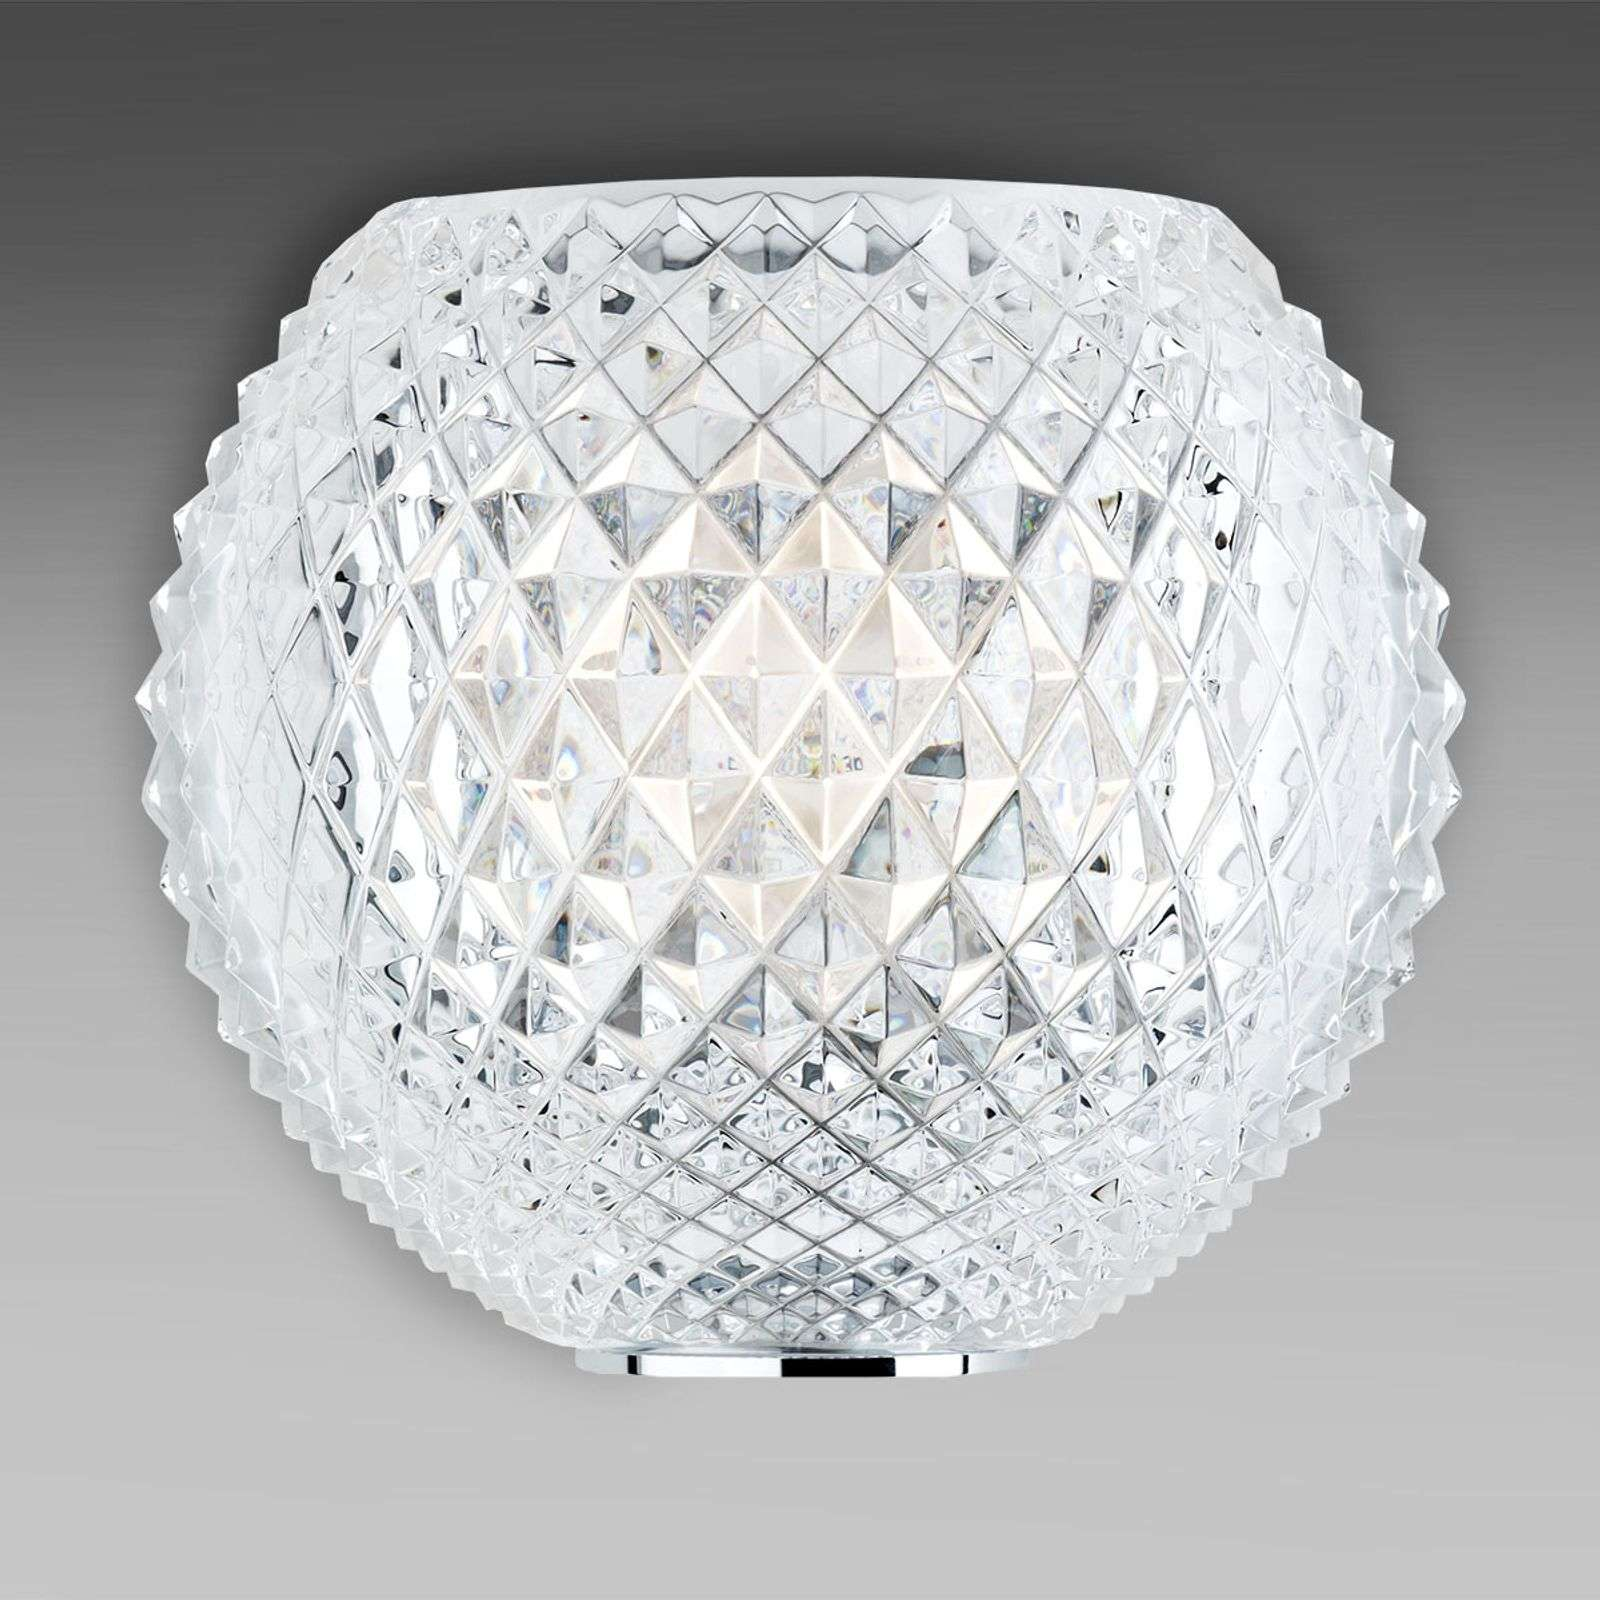 Kristal wandlamp Diamond and Swirl met patroon